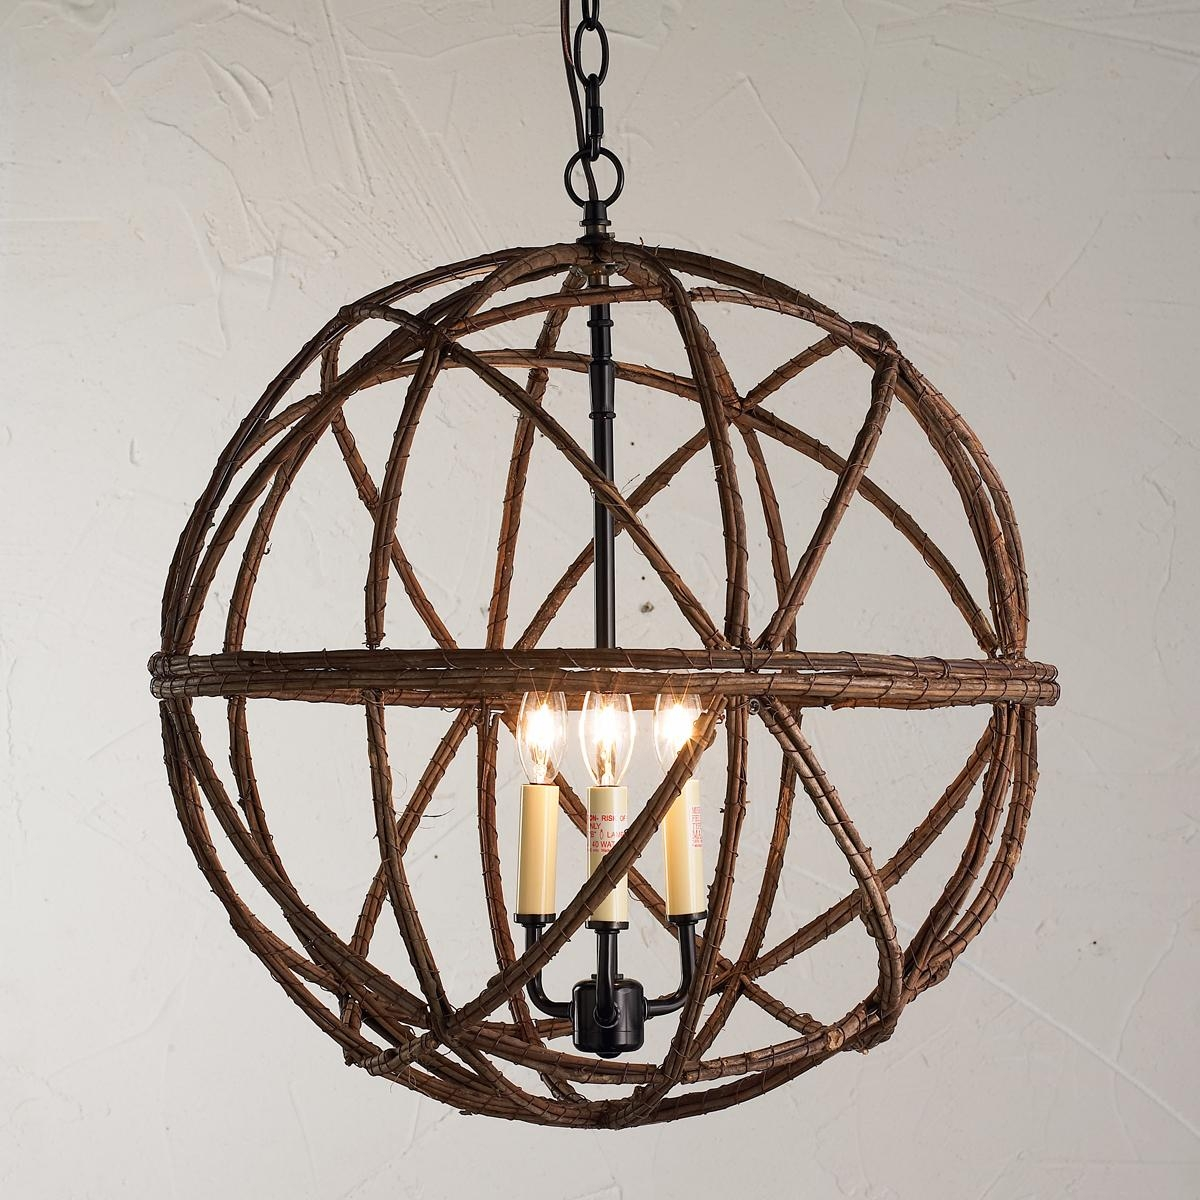 Decor Sphere Chandelier Is One Of The Best Light Fixture And Pertaining To Metal Sphere Chandelier (#5 of 12)